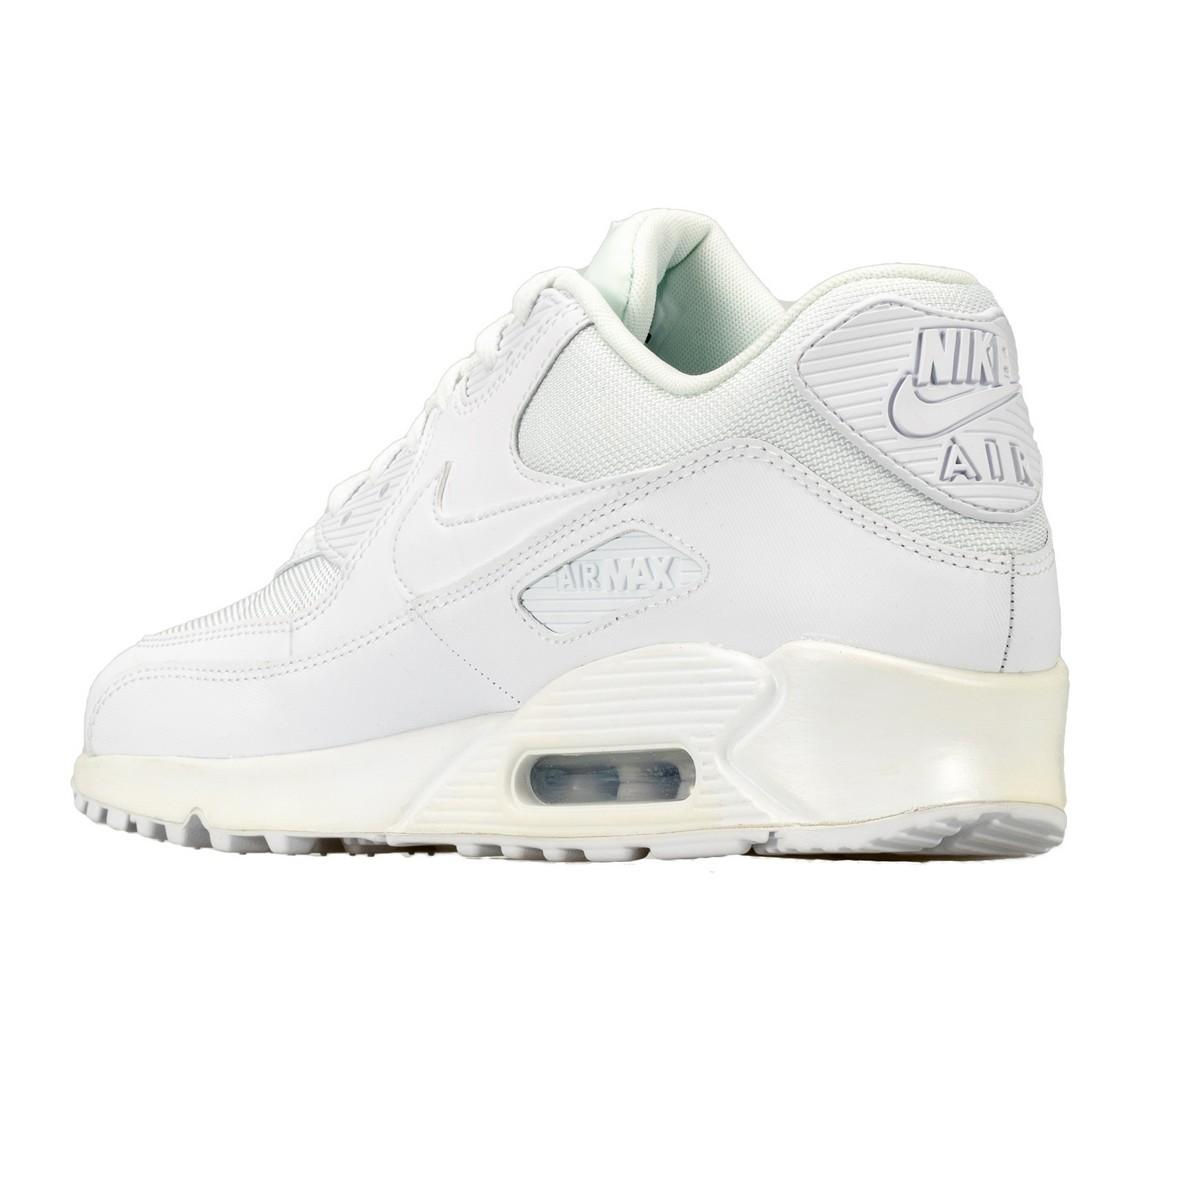 low priced 329d8 d48de SCARPE UOMO NIKE AIR MAX 90 ESSENTIAL 537384 111 TOTAL WHITE